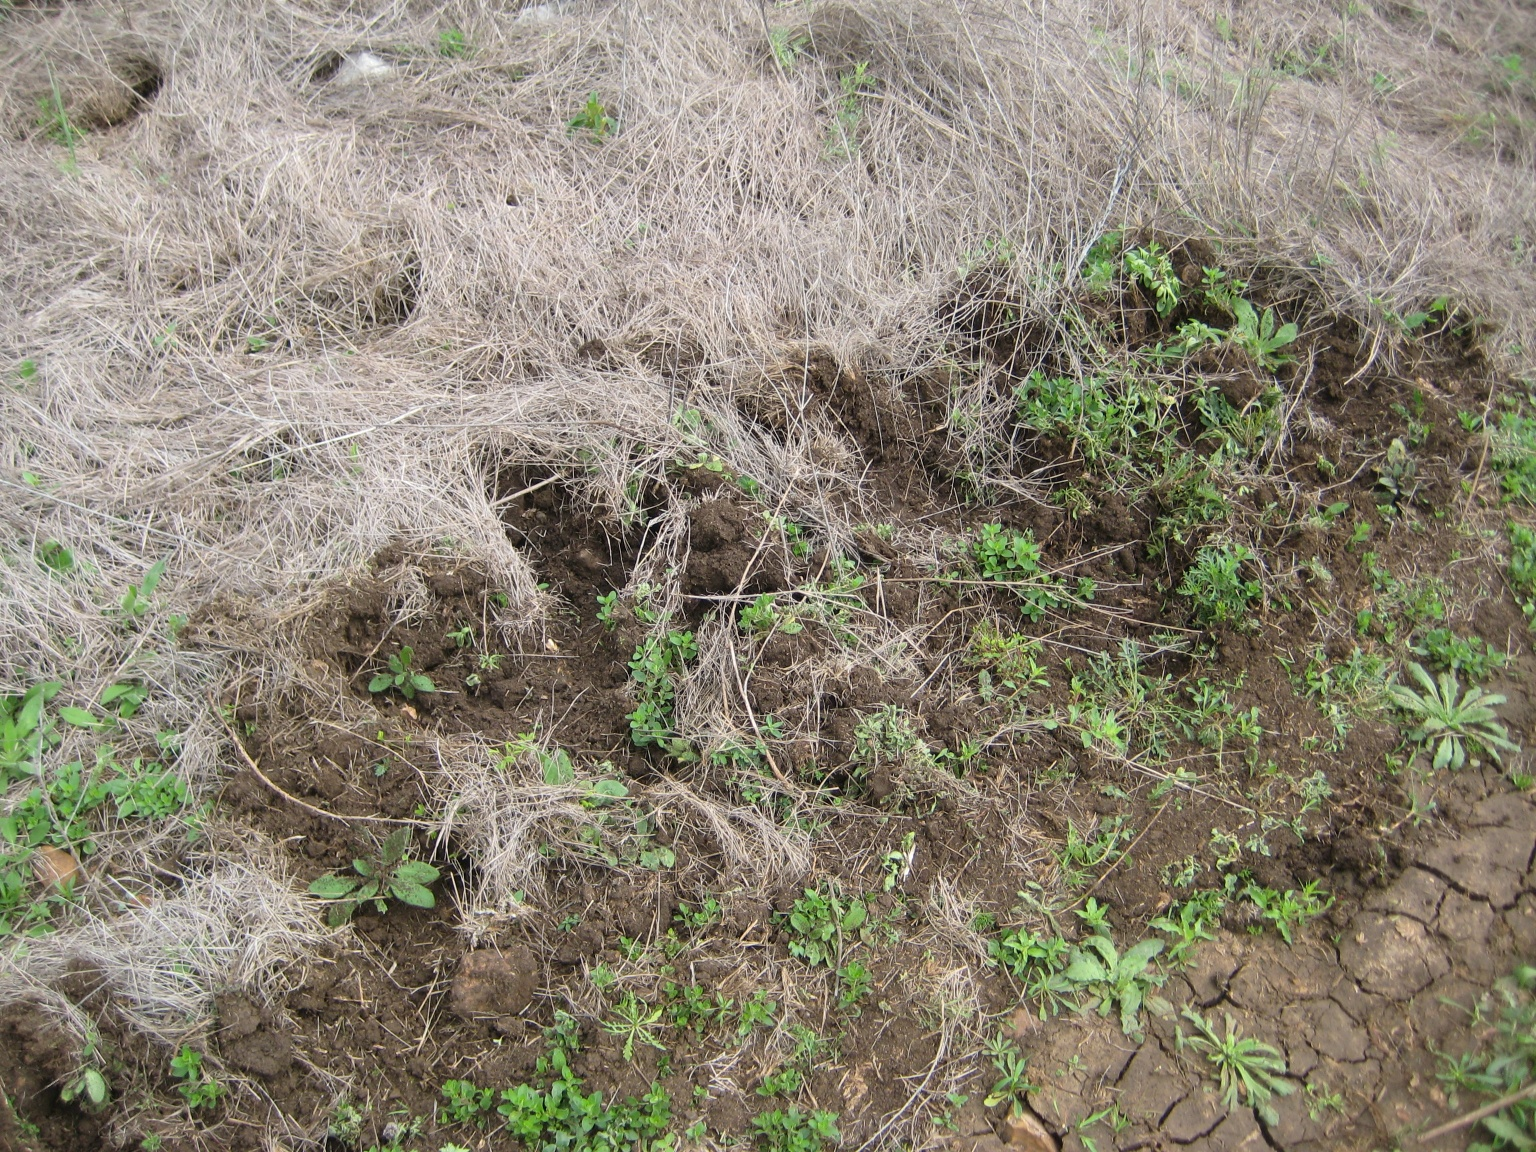 No snake in this picture, but here's evidence of feral hogs. They ...